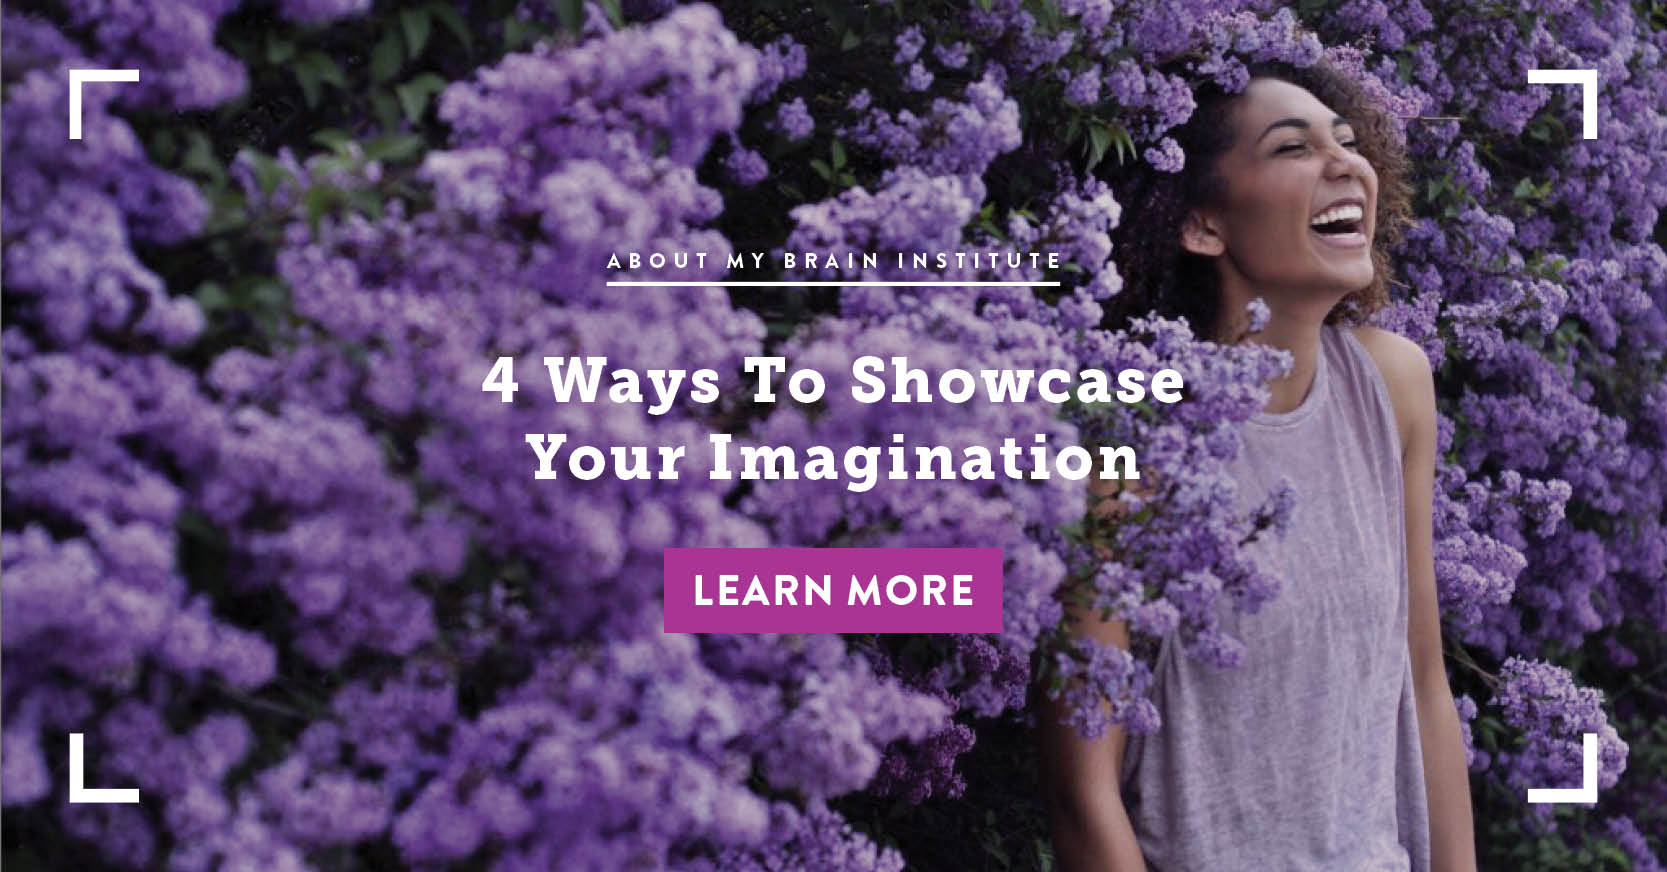 4 Ways To Showcase Your Imagination